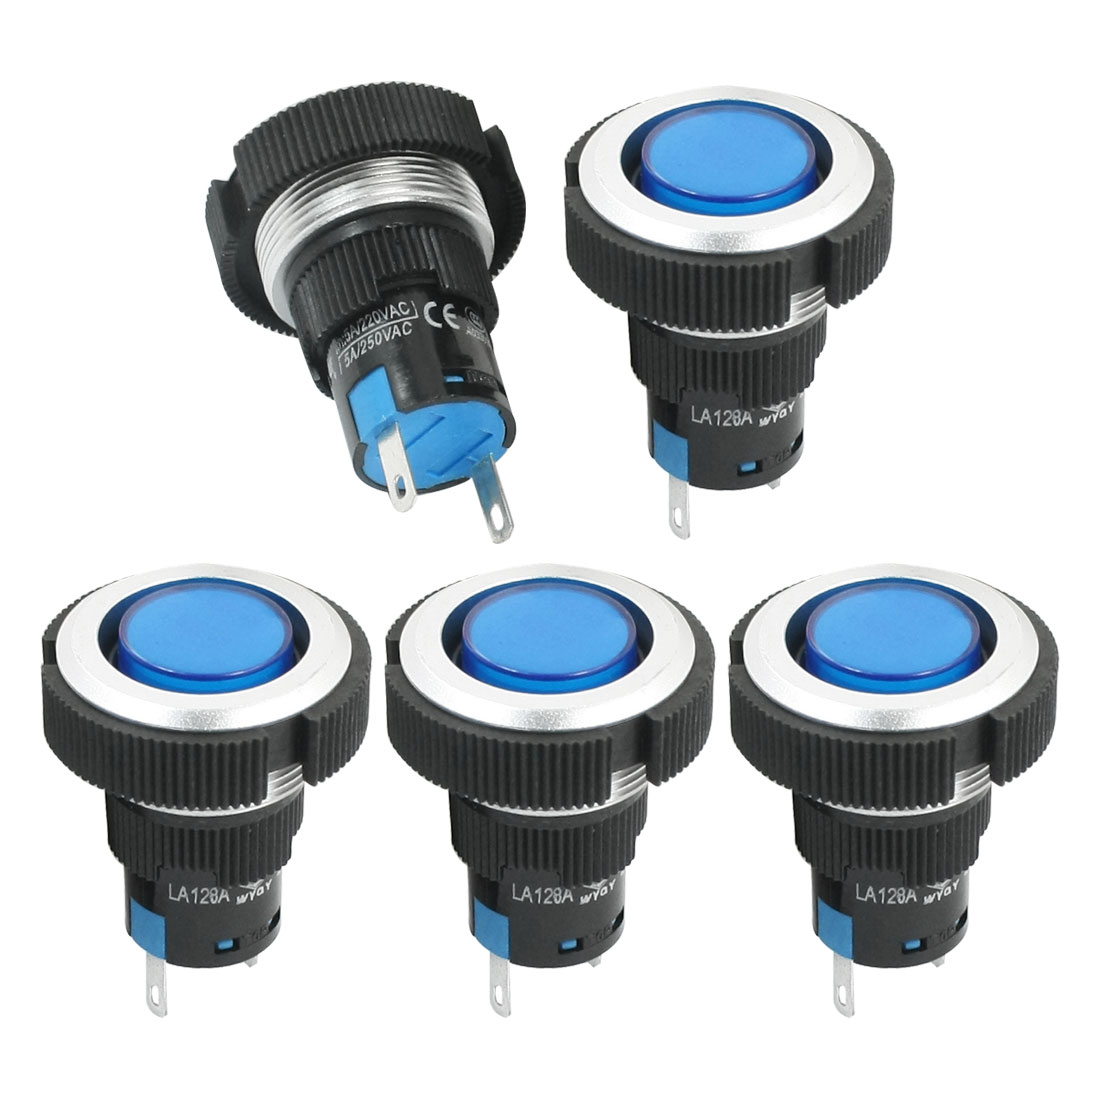 5Pcs DC 24V 22mm Dia Thread Panel Mounting Plastic Signal Indicator Light Pilot Lamp Bulb Blue